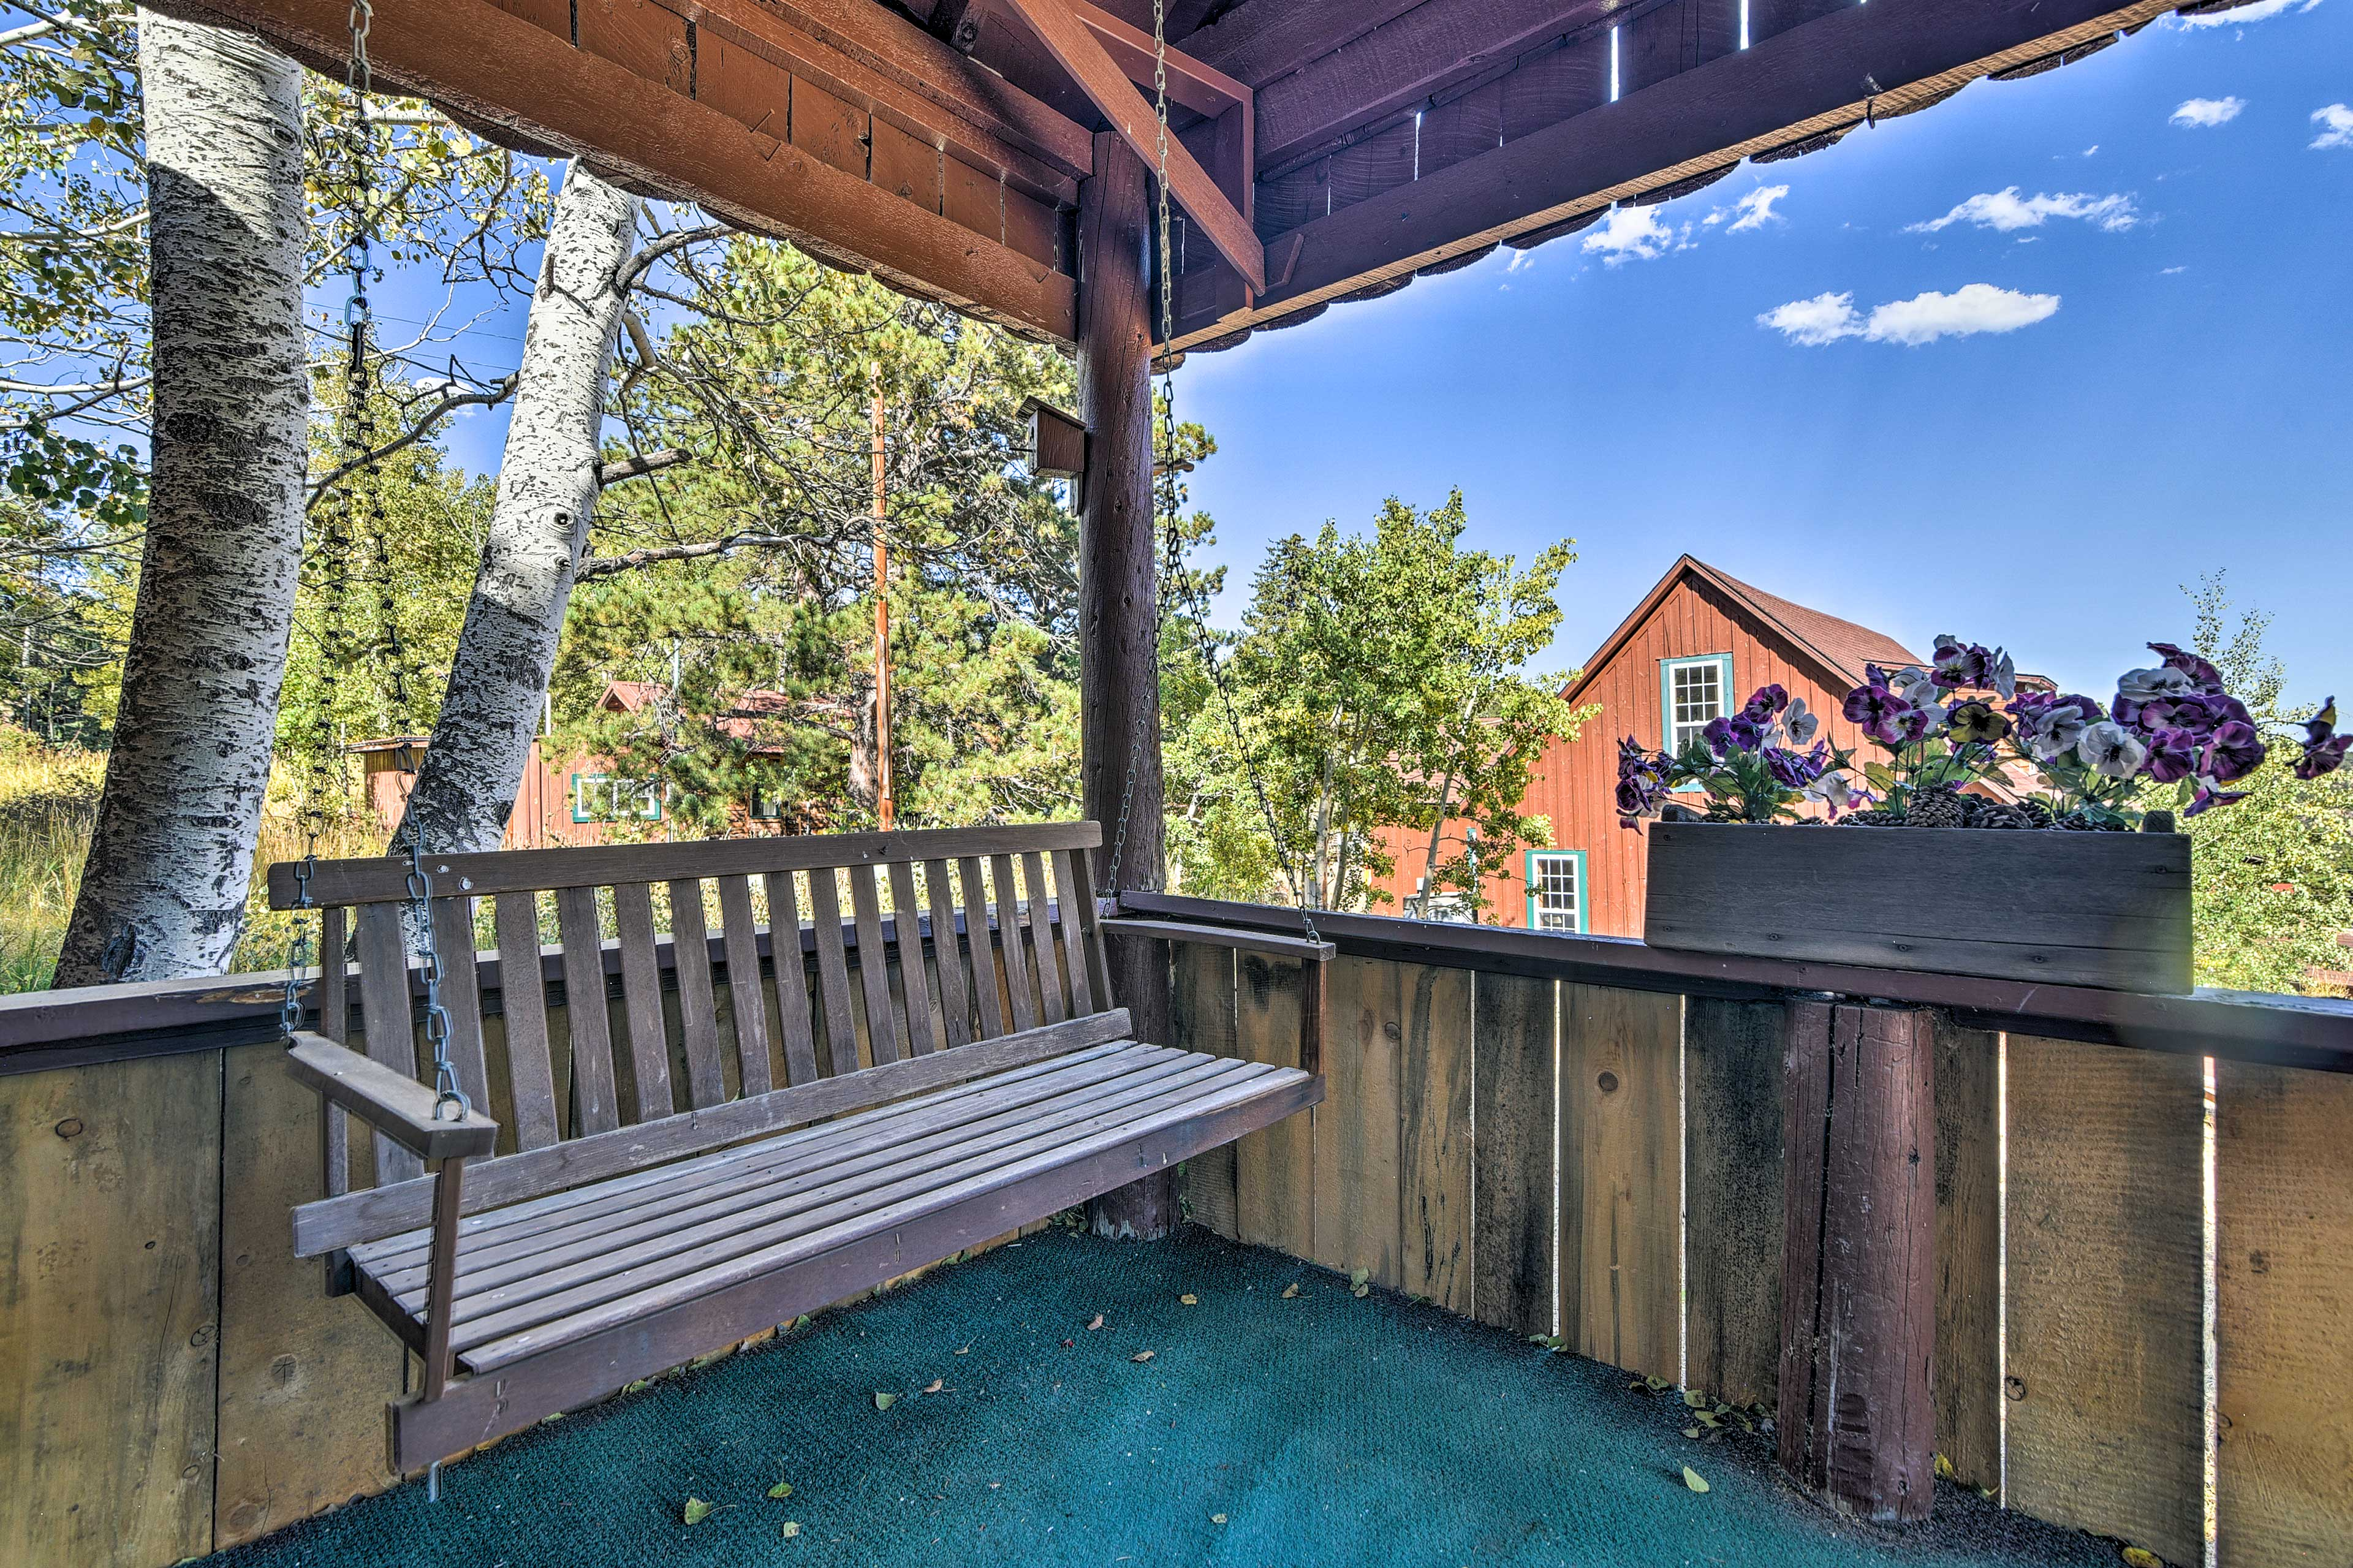 The porch swing will be your favorite place!